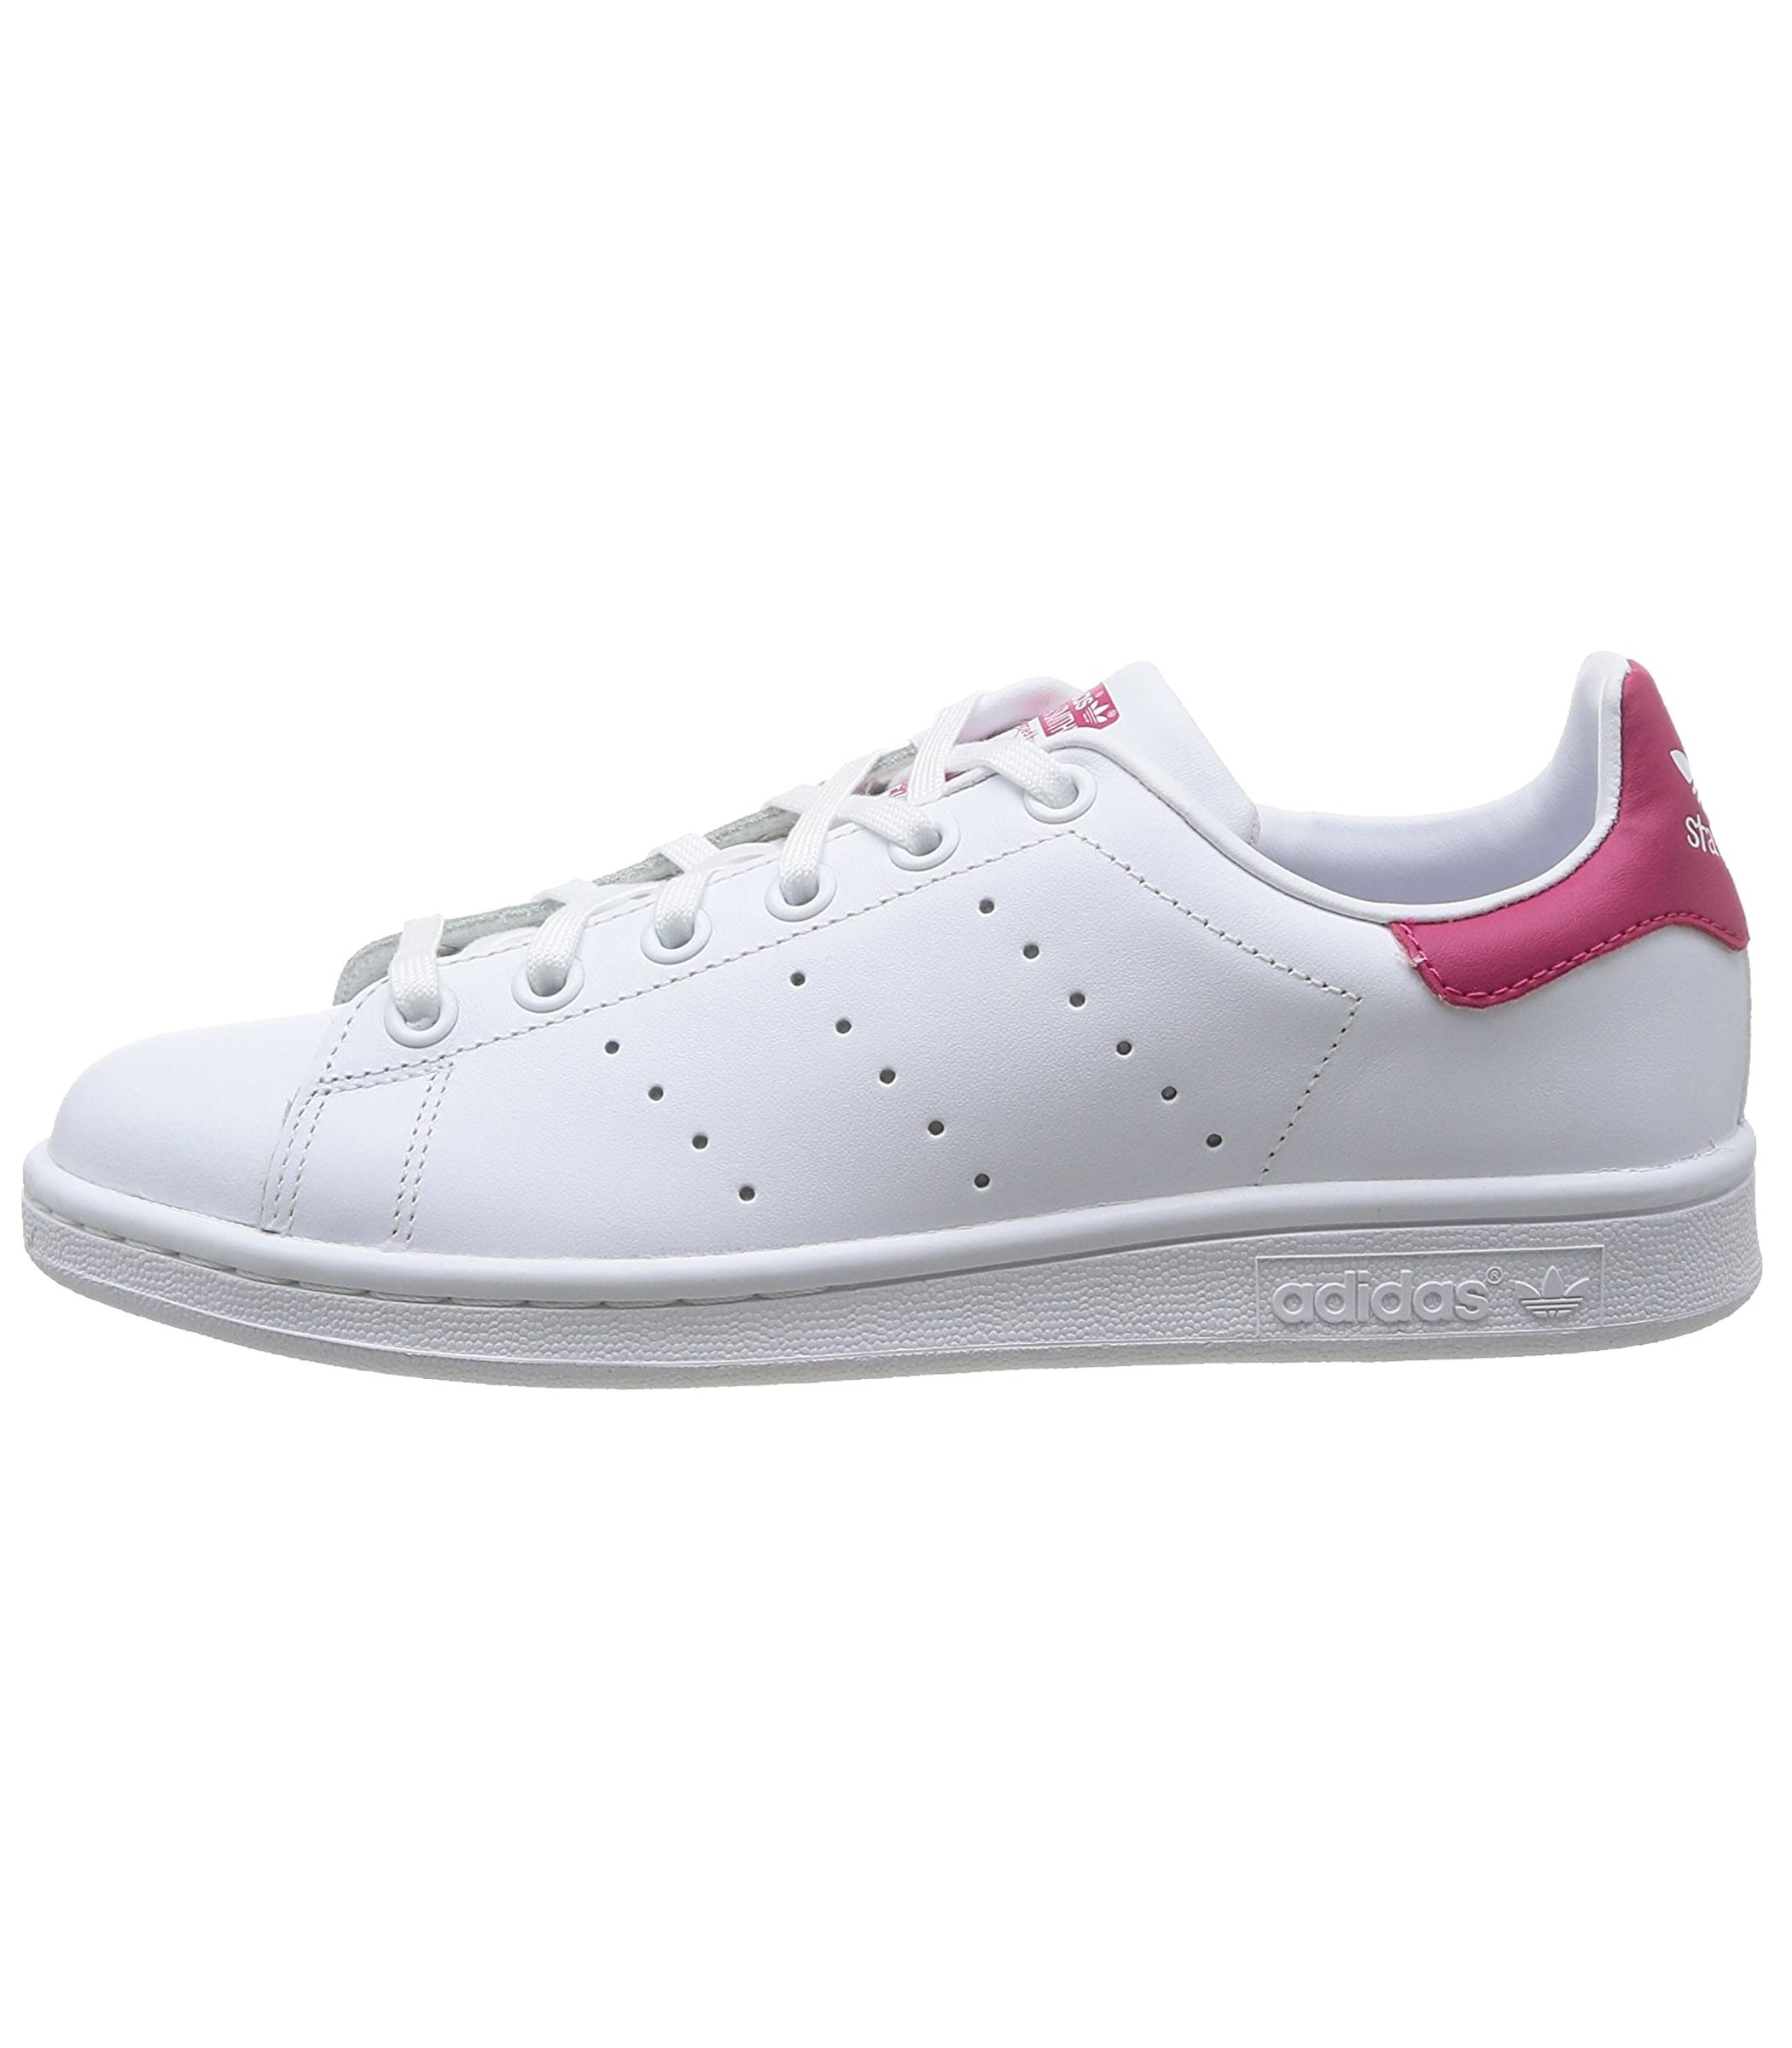 buy popular 1cfe2 277c5 Scarpe Sneakers Adidas Stan Smith da Ragazza Rif. B32703